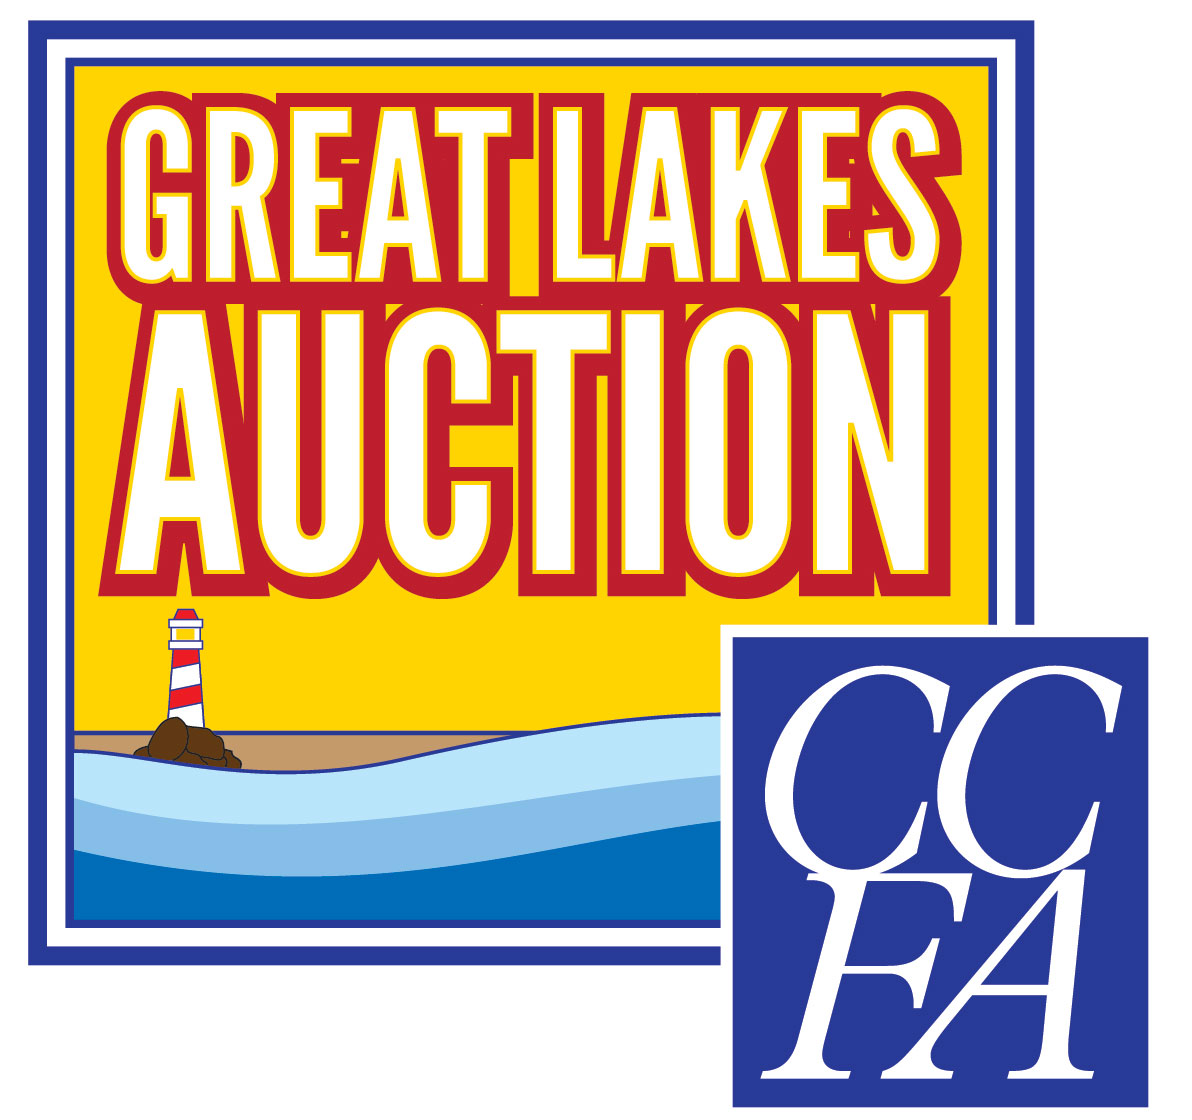 Great Lakes Auction